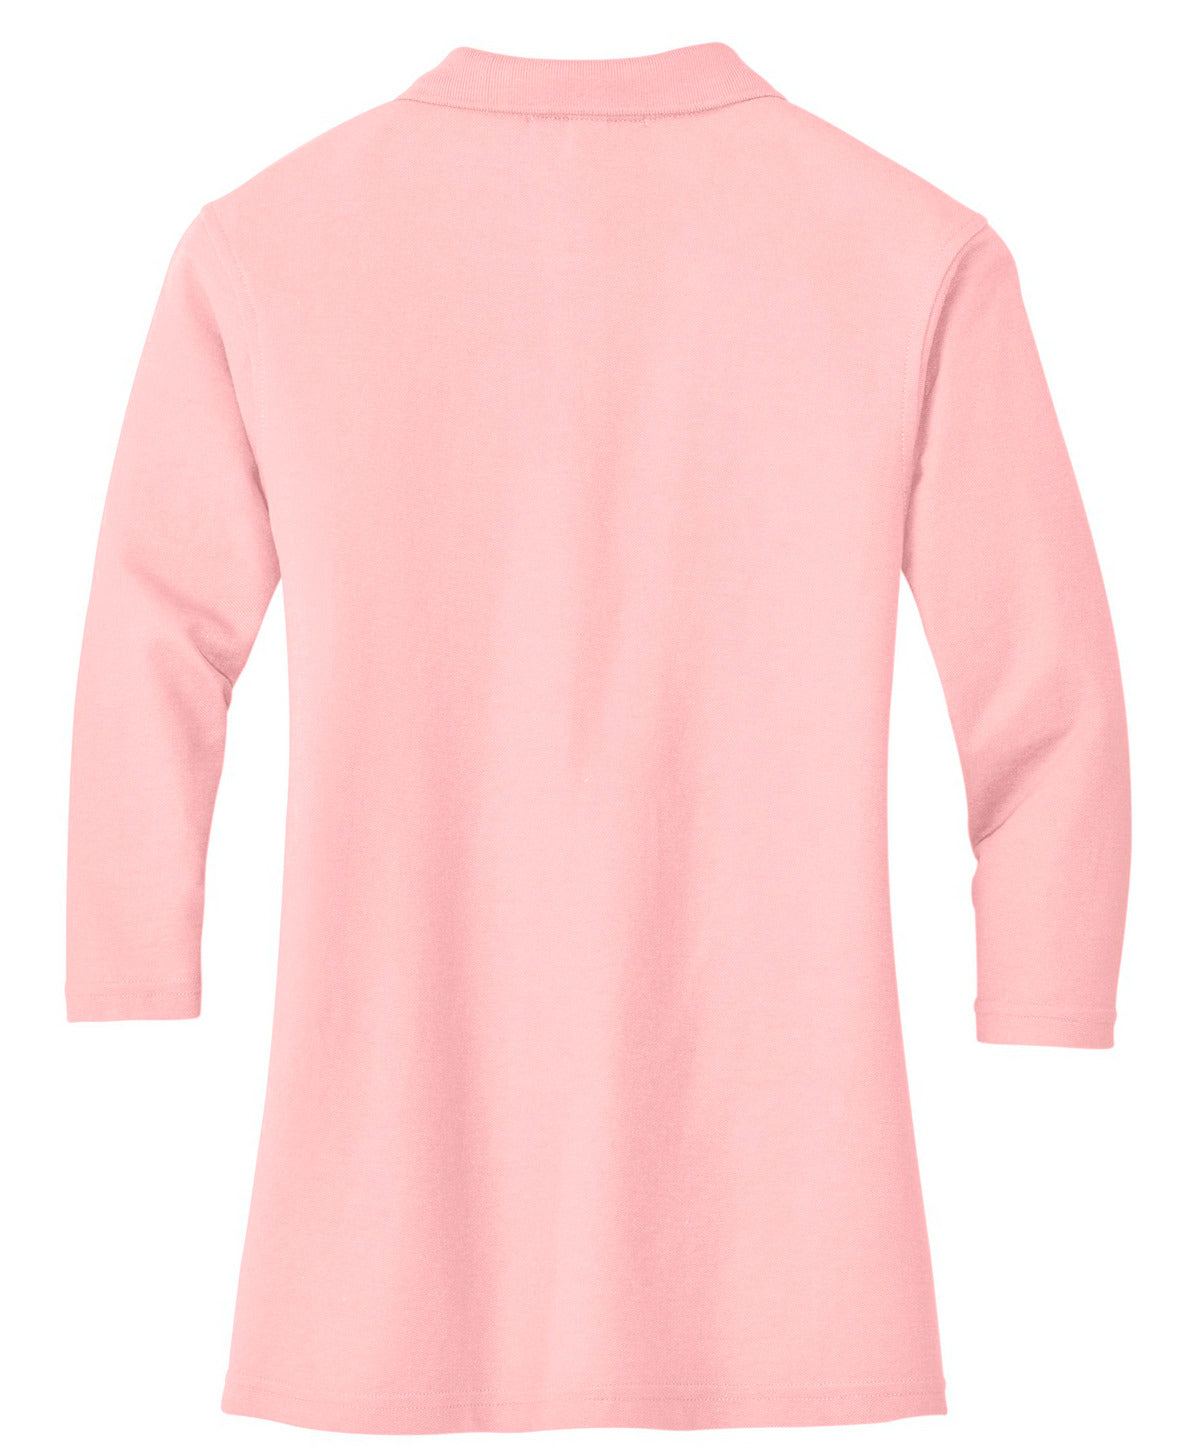 Mafoose Women's Silk Touch ¾ Sleeve Polo Shirt Light Pink-Back